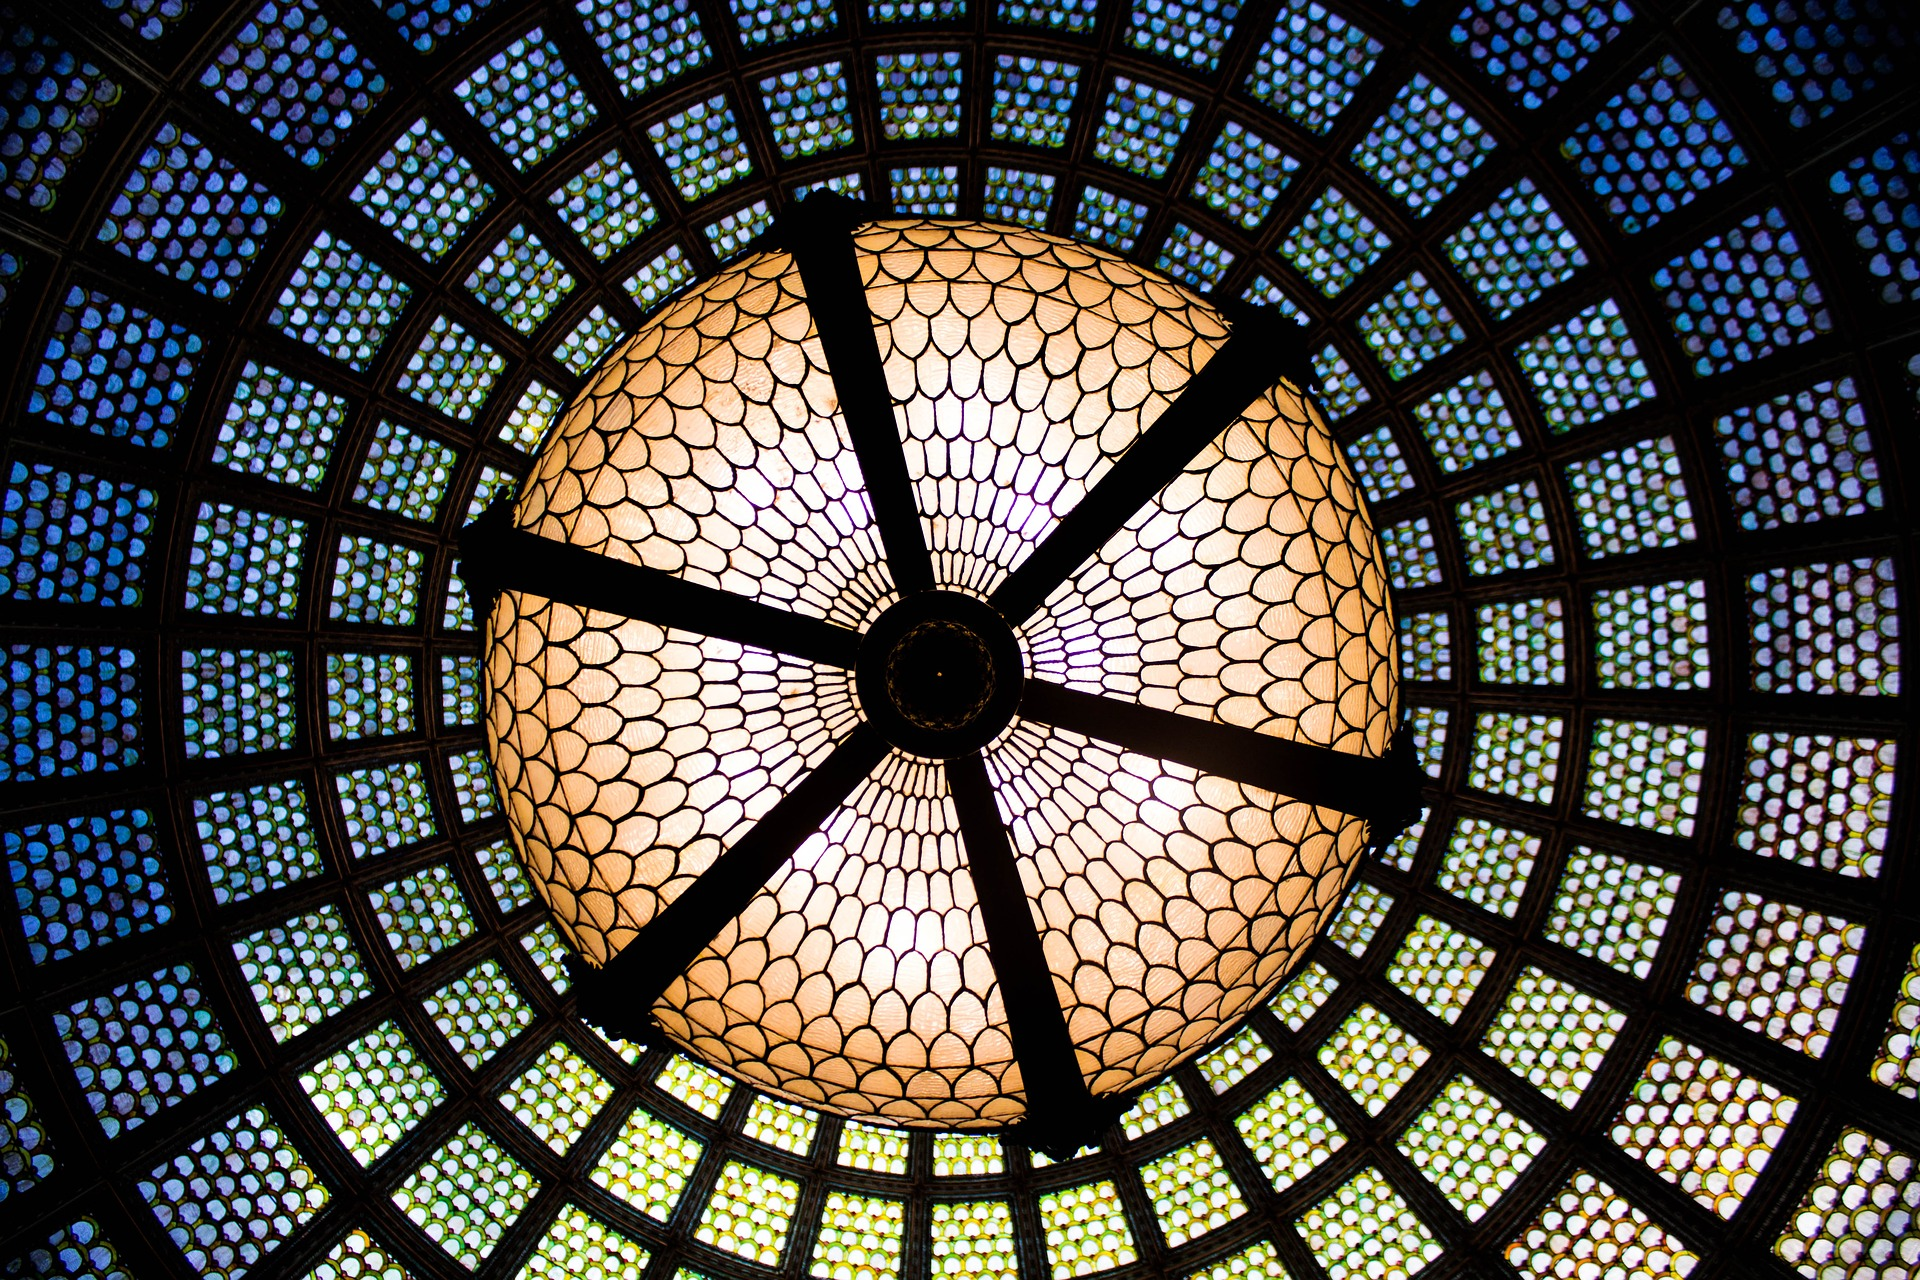 Tiffany Dome in Chicago Cultural Center Center View